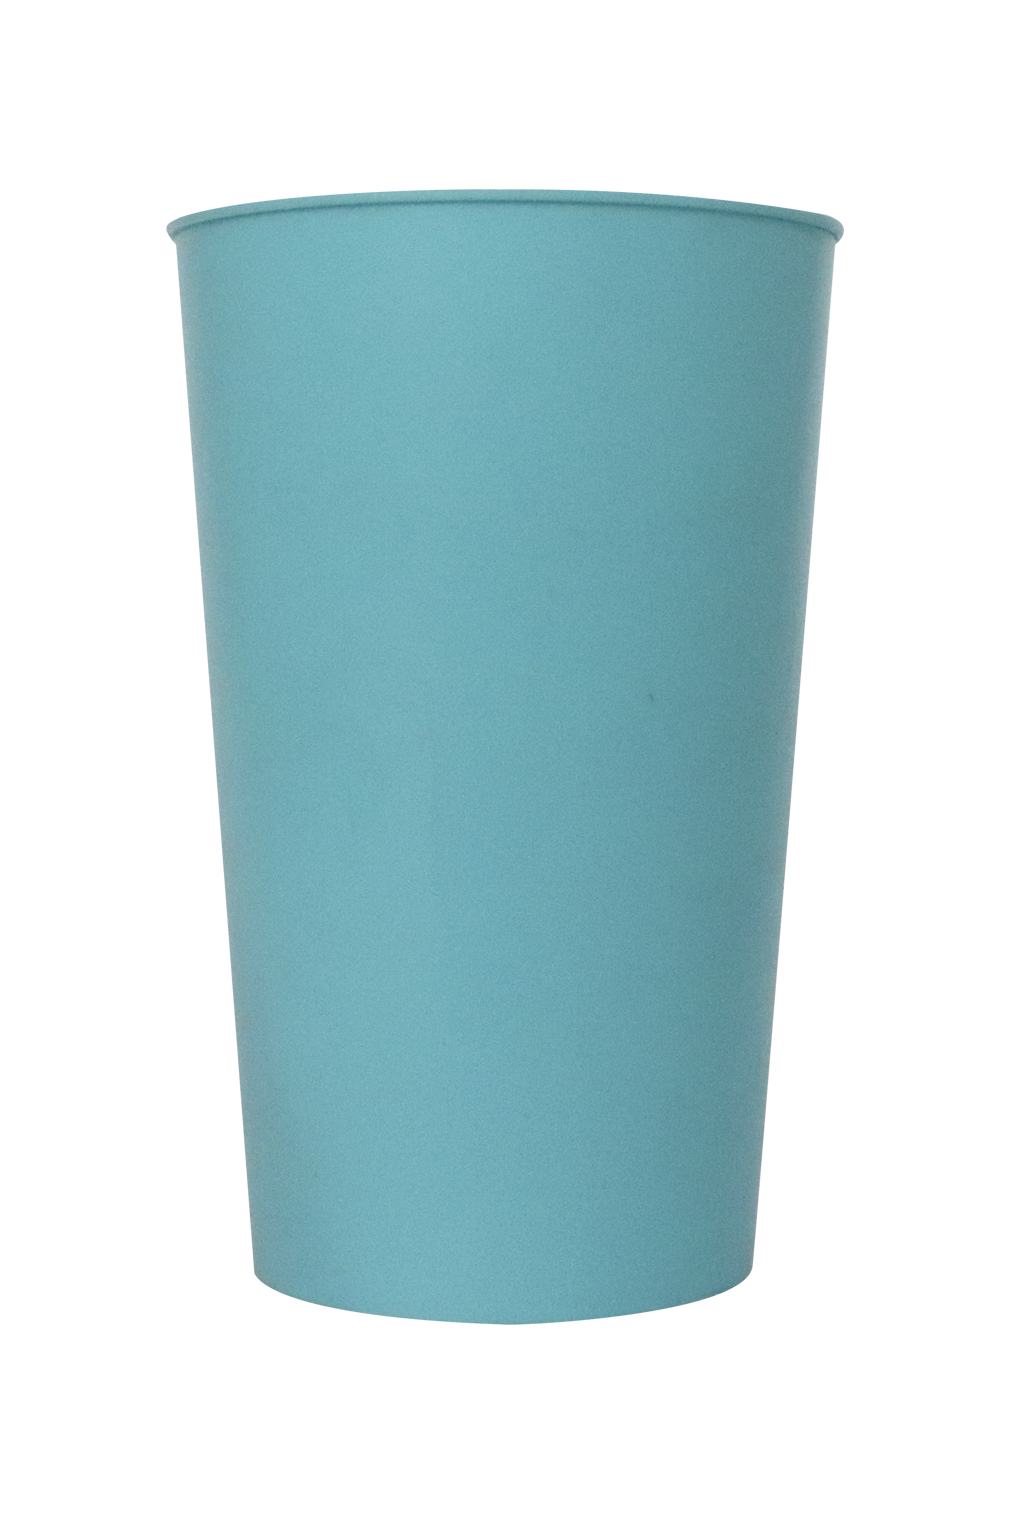 Copo Label 550ml - Hello Summer - Copo azul tiffany liso